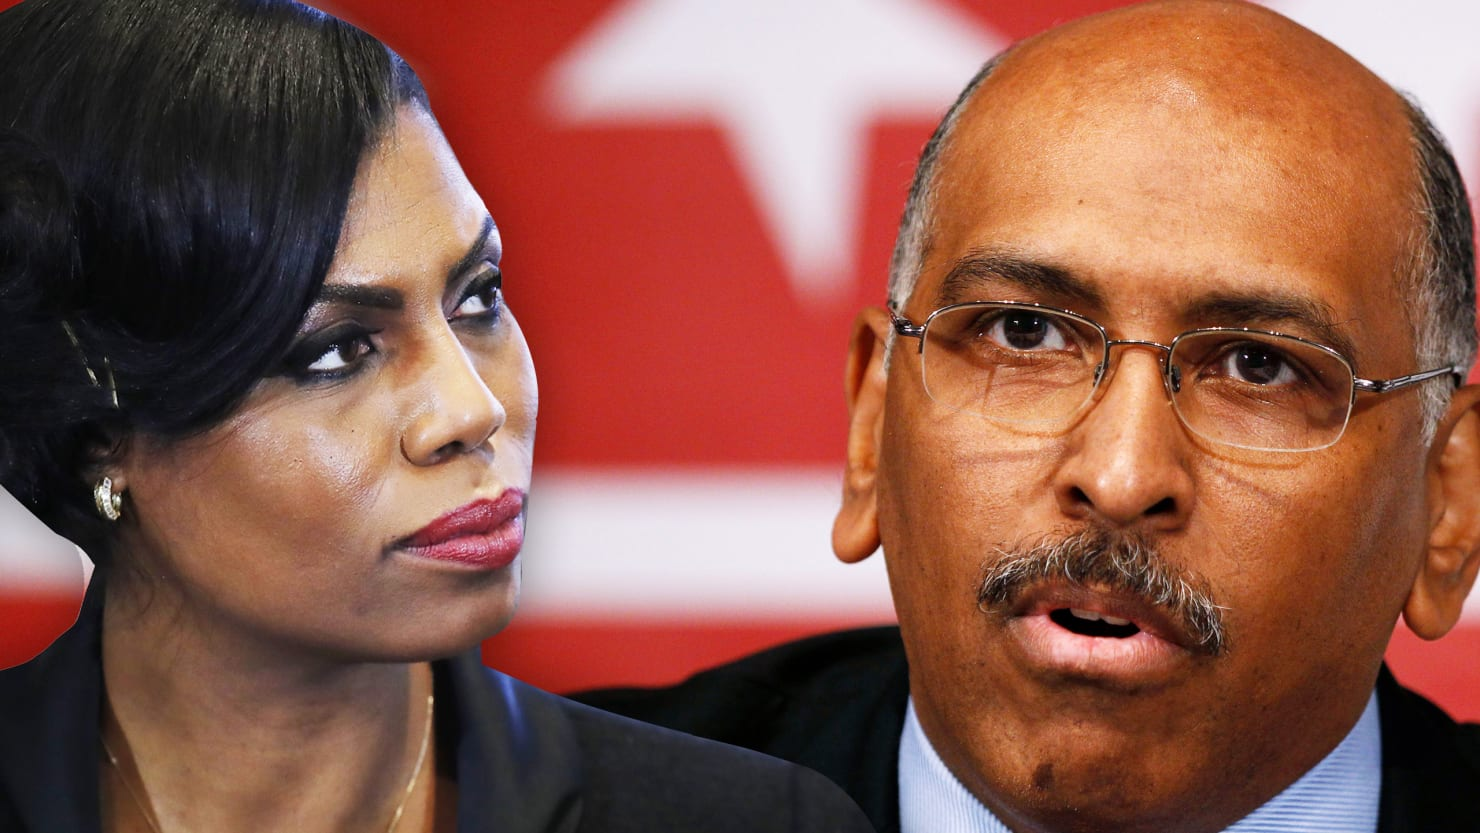 Ex-RNC Chair Michael Steele: Omarosa 'Not Credible' Despite Trump 'Racist' Tape Claim